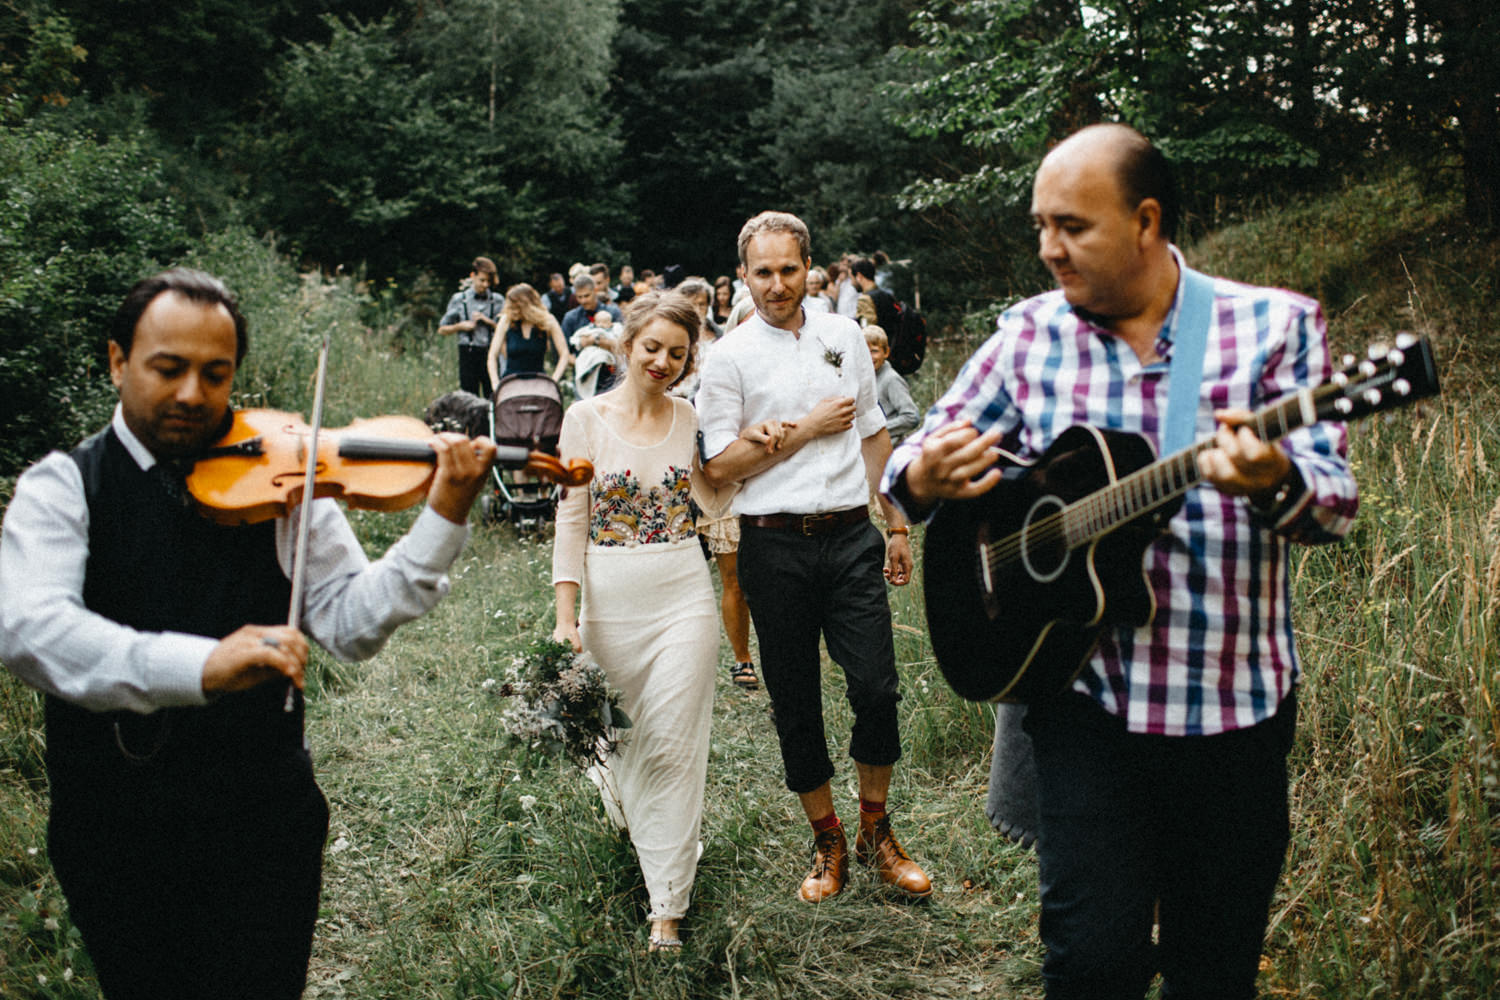 bride and groom exiting the ceremony location with live music